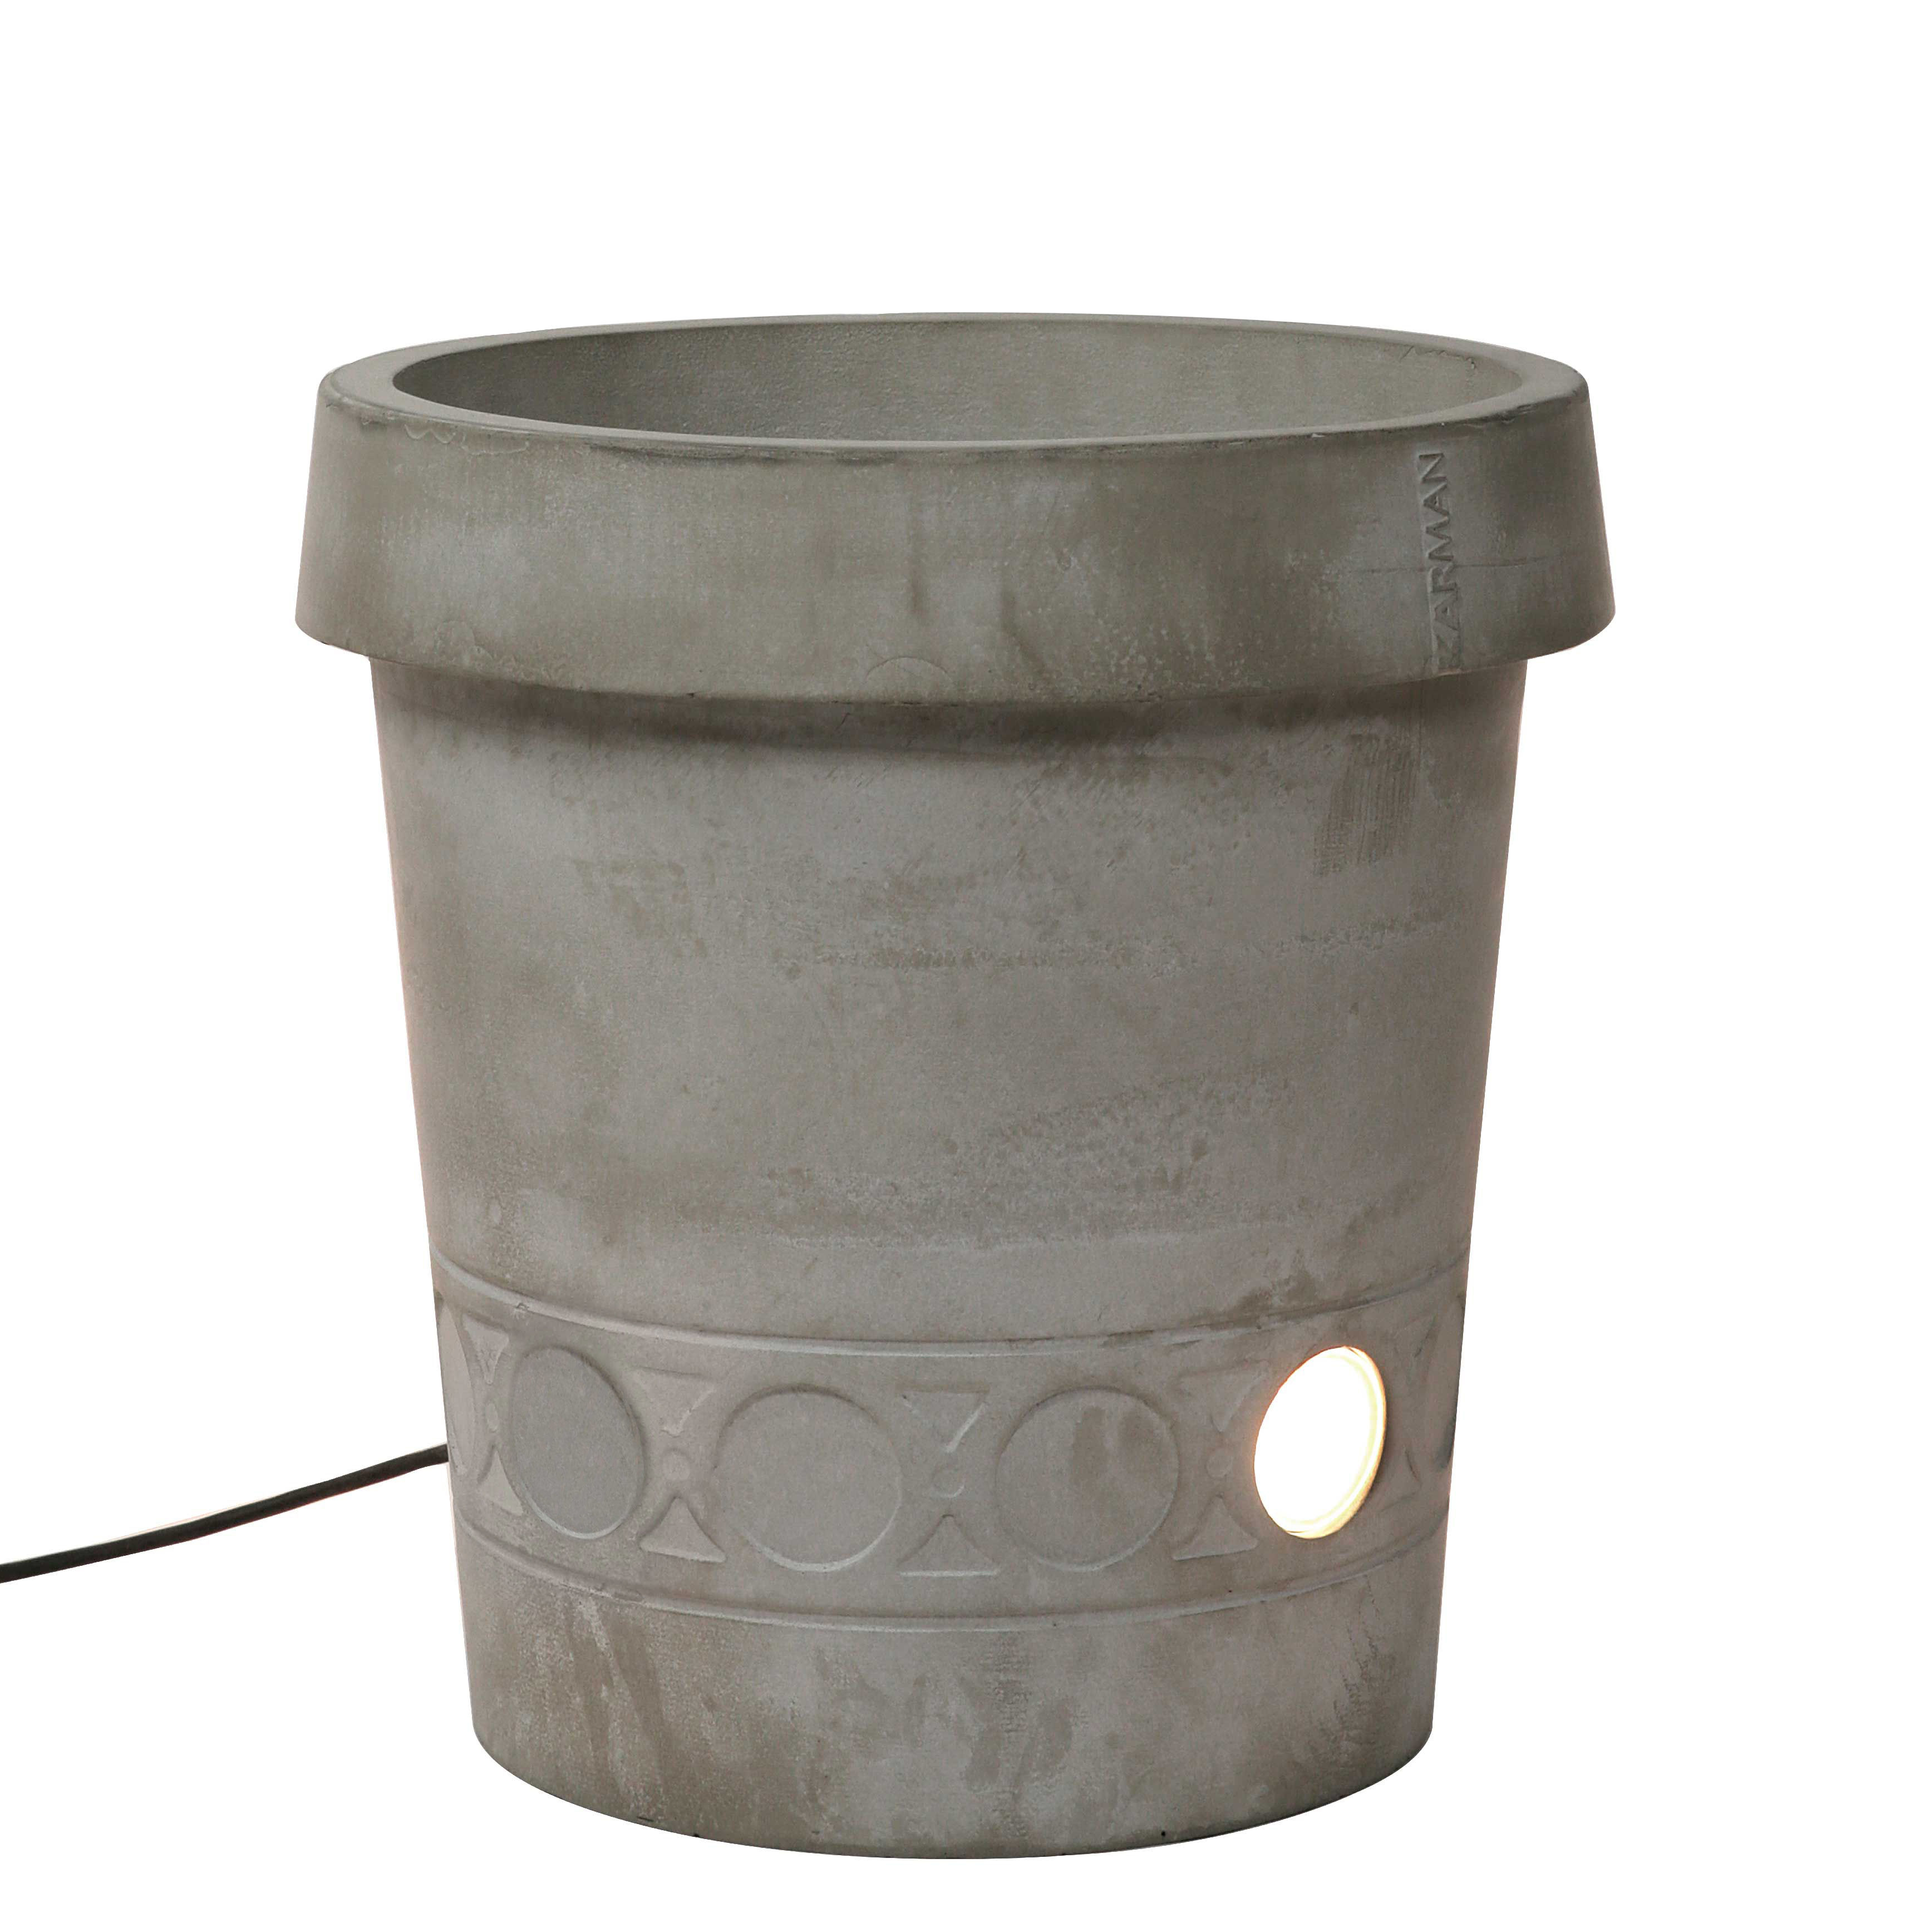 Lighting - Outdoor Lighting - Gervaso LED Luminous flowerpot - LED - Concrete - H 45 cm by Karman - Grey - concrete